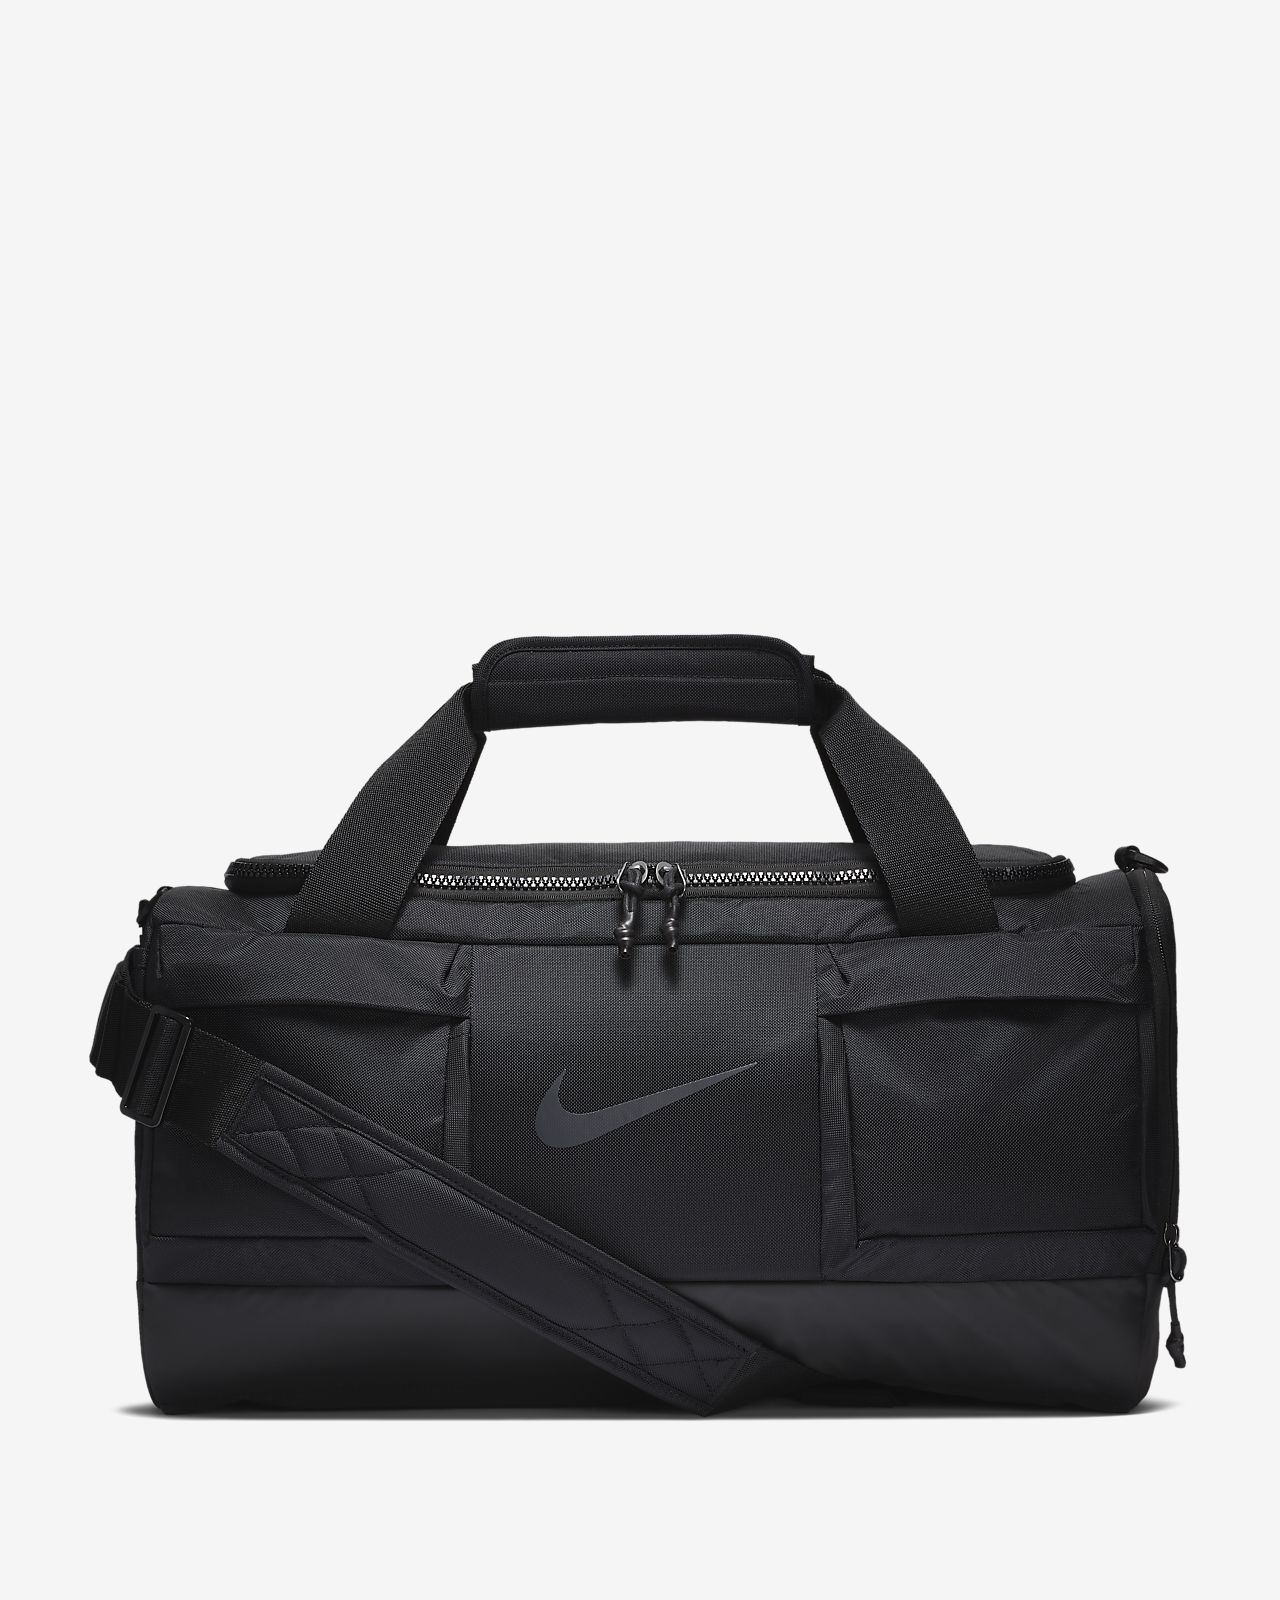 efb8cb1825d Nike Vapor Power Men s Training Duffel Bag (Small). Nike.com GB